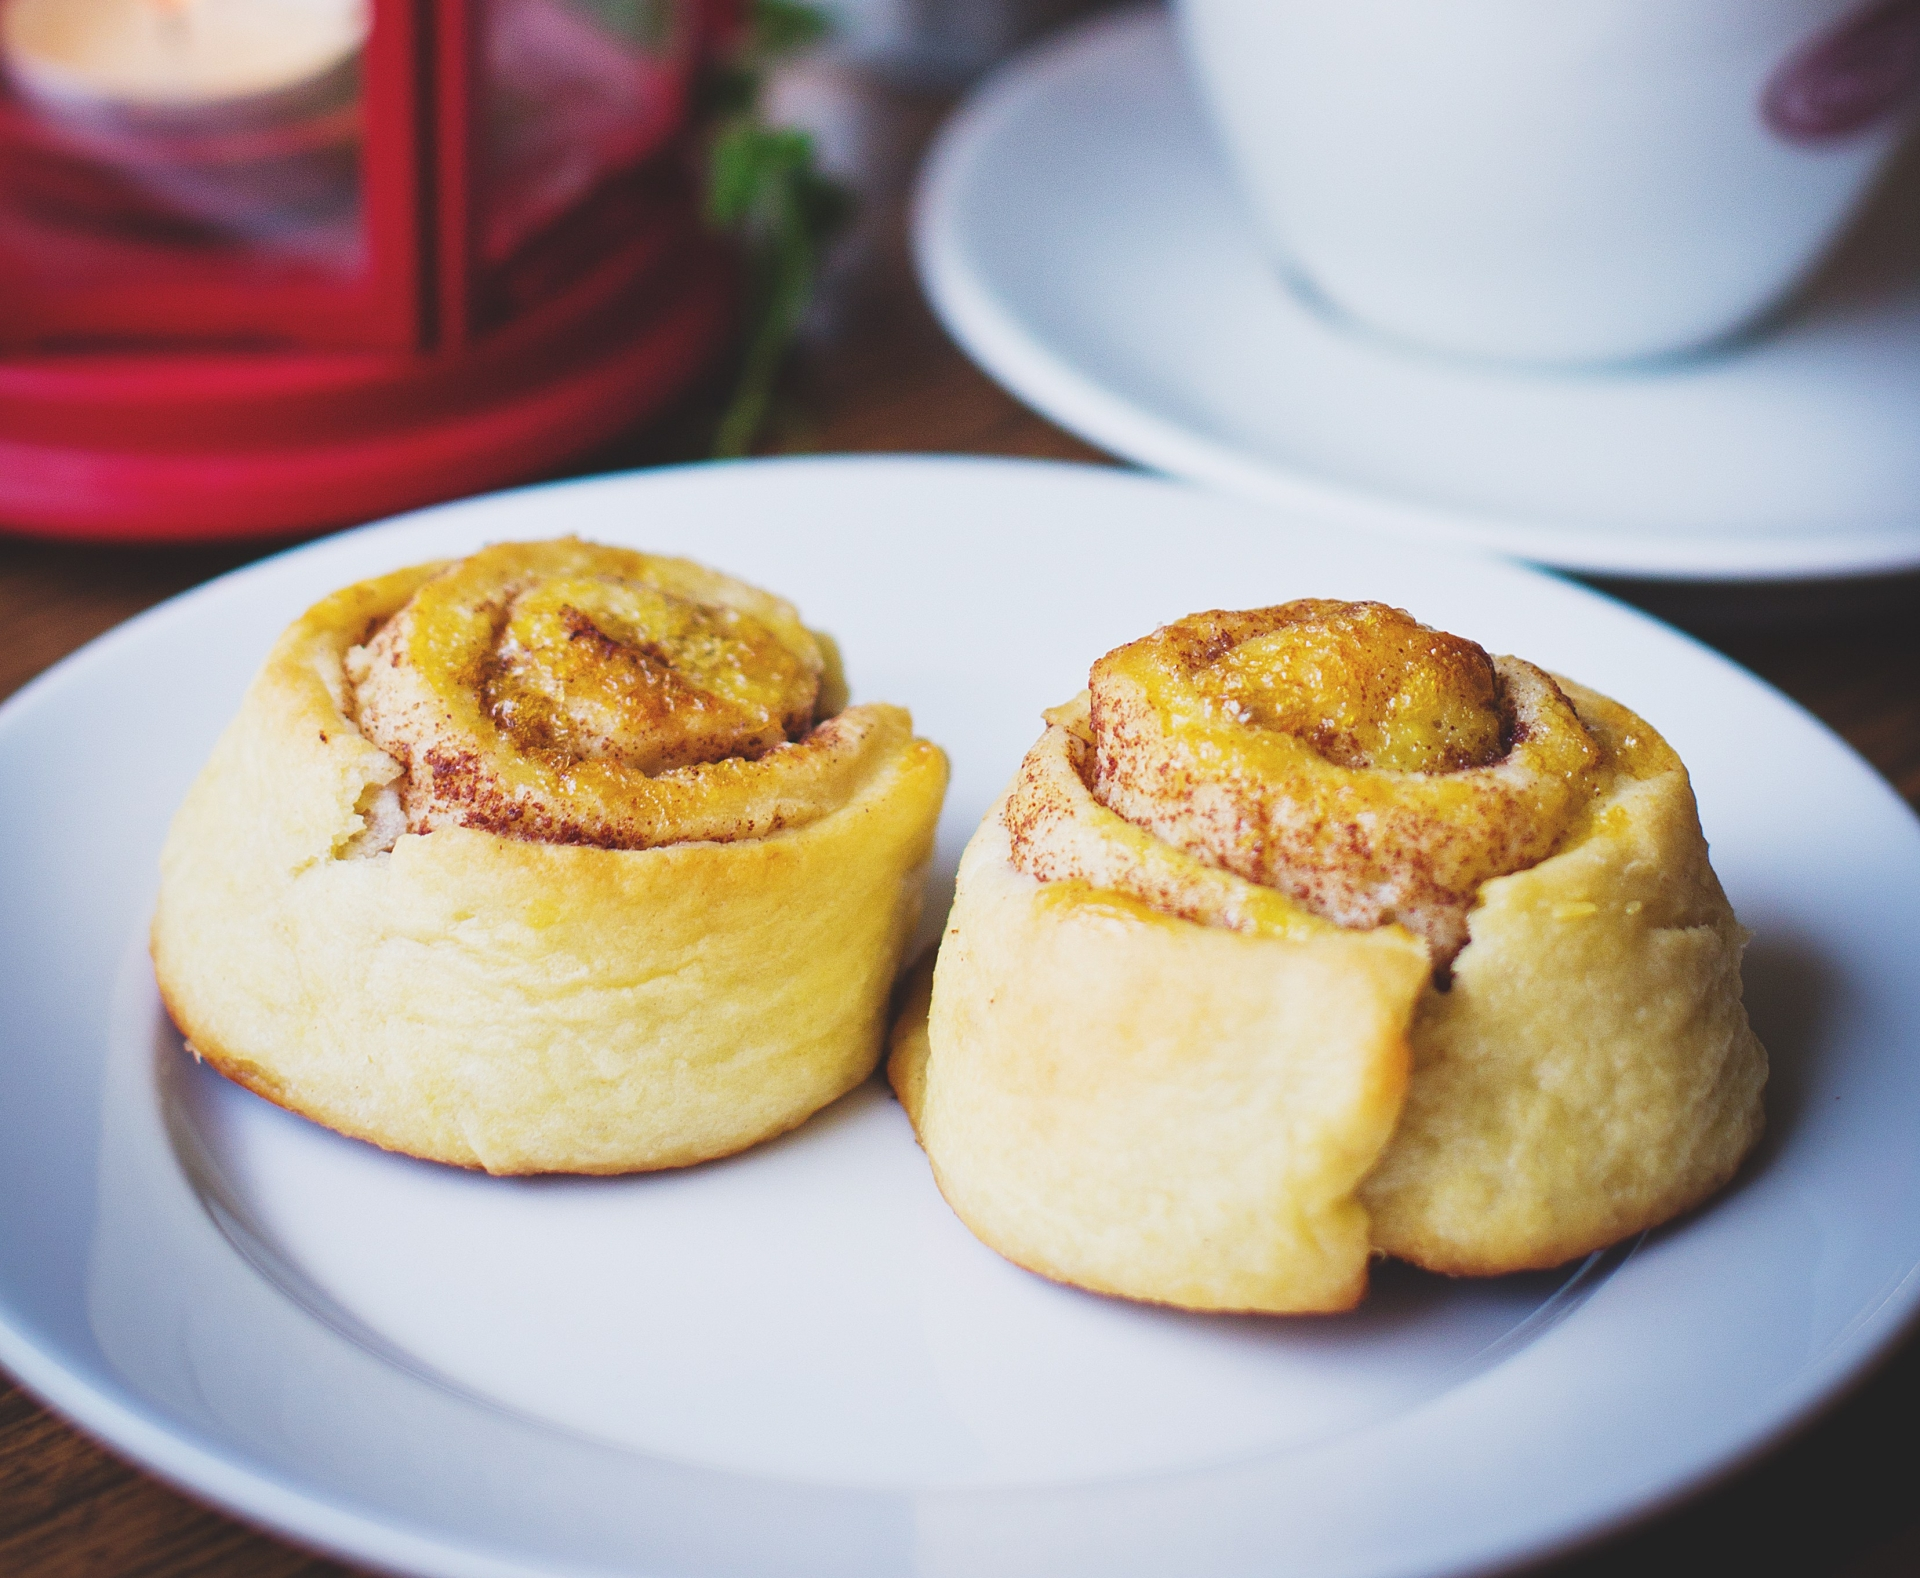 Two cinnamon buns on a plate in the foreground with cup of cappuccino and holiday styled lanterns in the background.